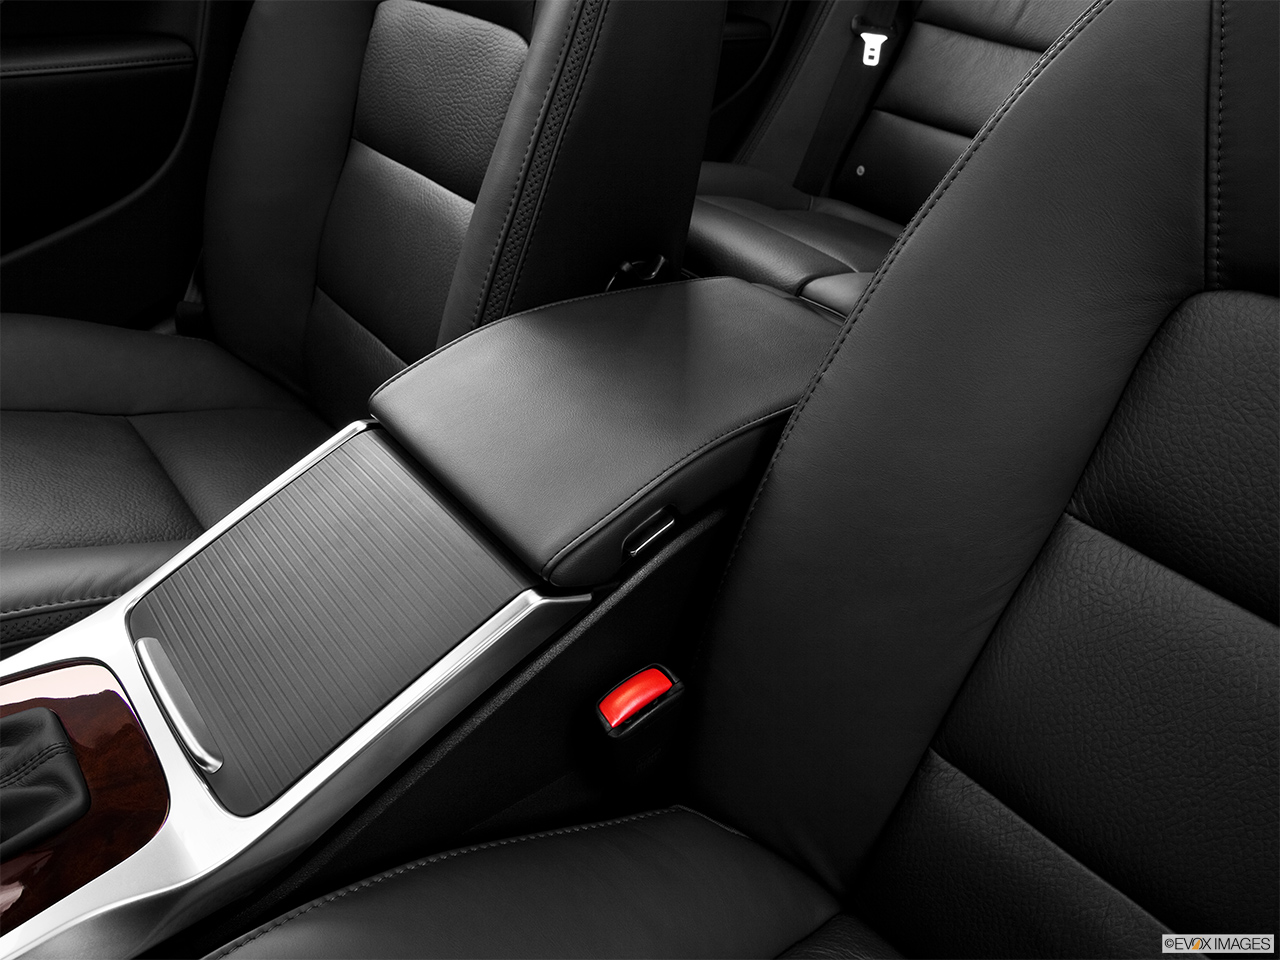 2013 Volvo XC70 T6 AWD Platinum Front center console with closed lid, from driver's side looking down